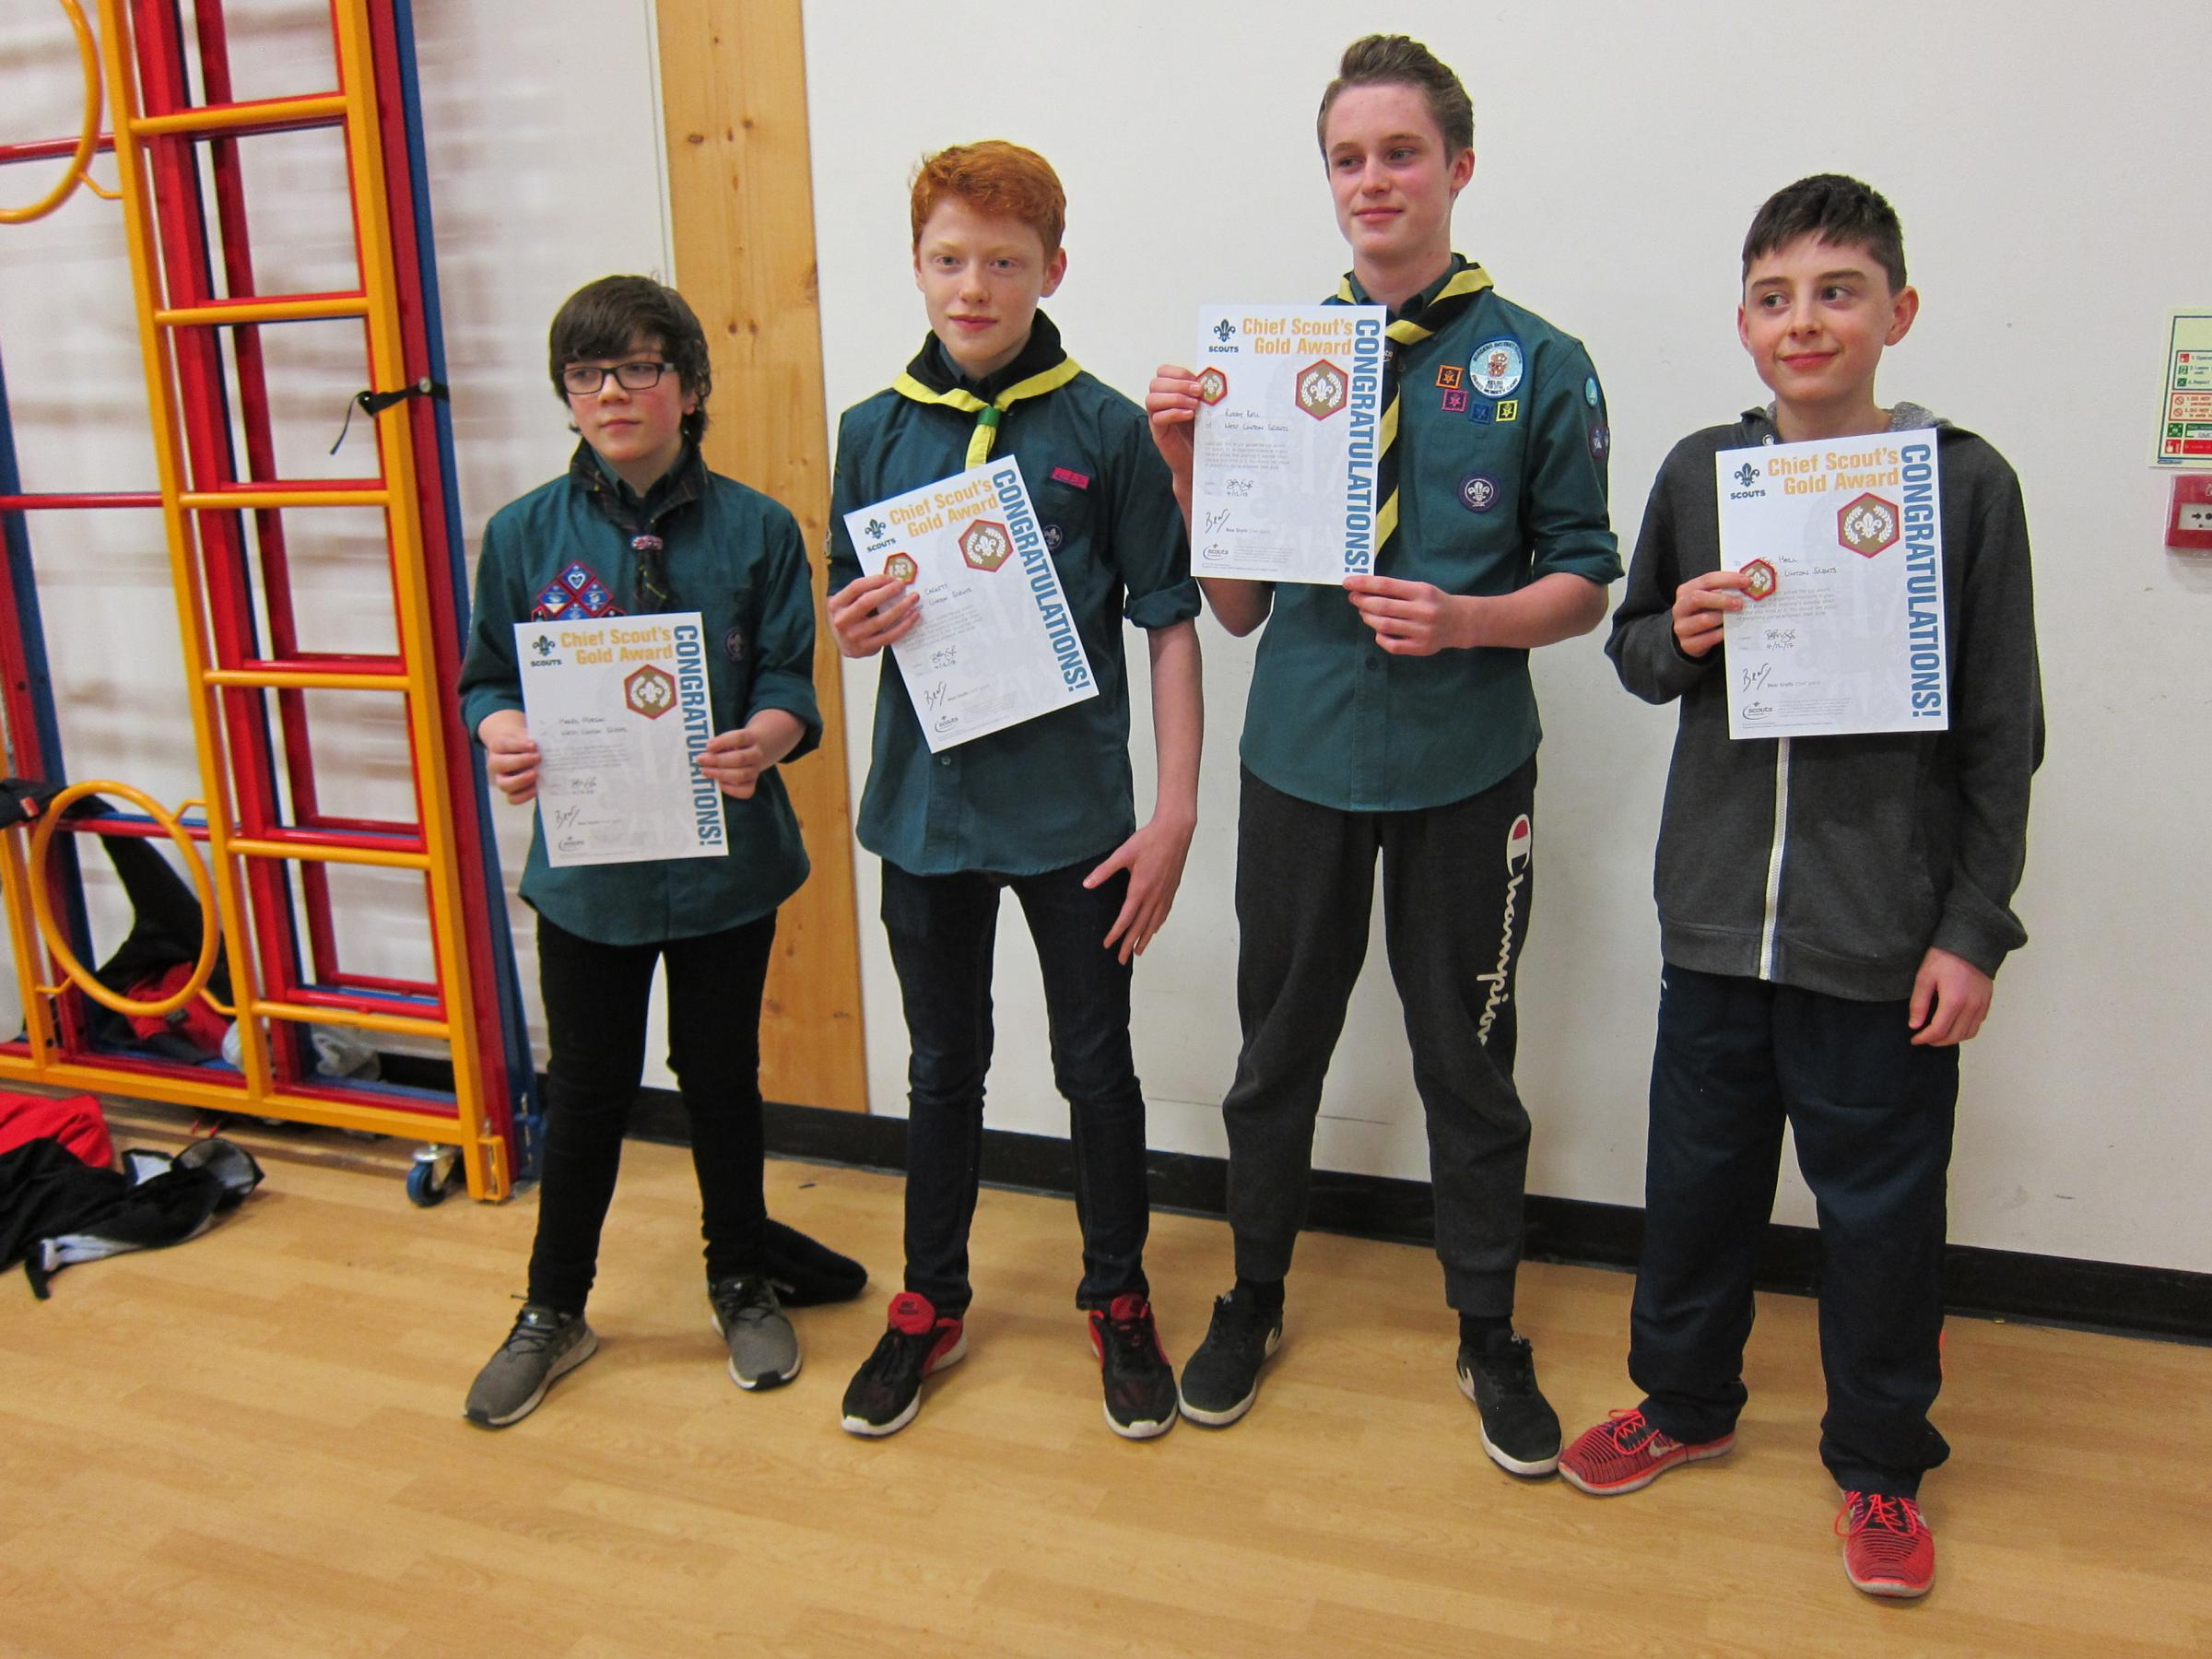 Harris Merson, Euan Cackett, Roddy Bell and Joe Hall picked up their awards earlier this month. Photo: Linda Gray